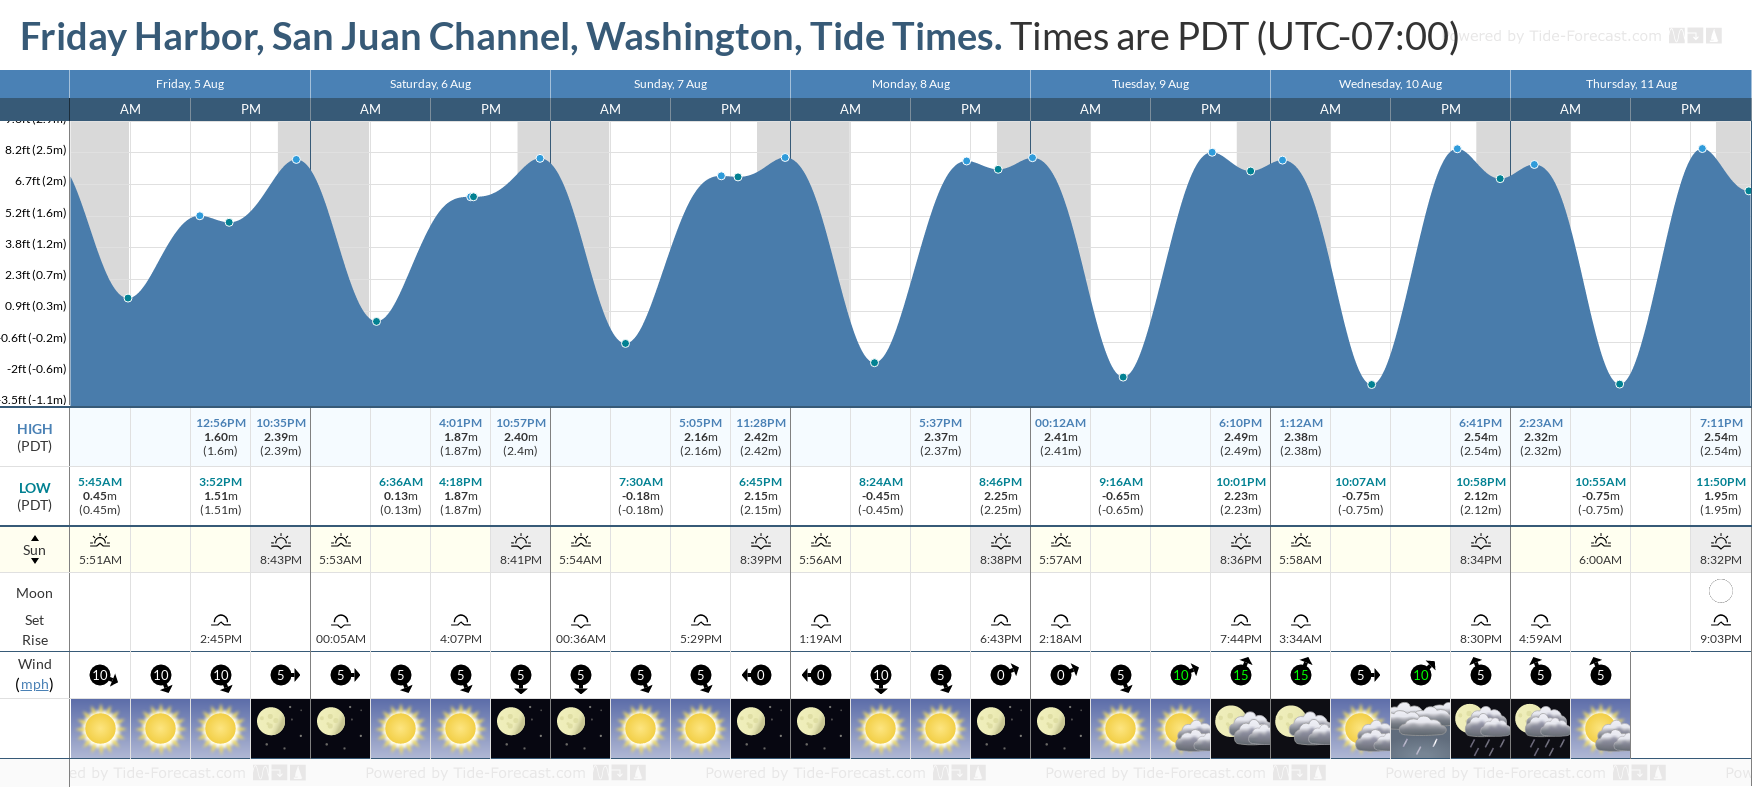 Friday Harbor, San Juan Channel, Washington Tide Chart including high and low tide tide times for the next 7 days